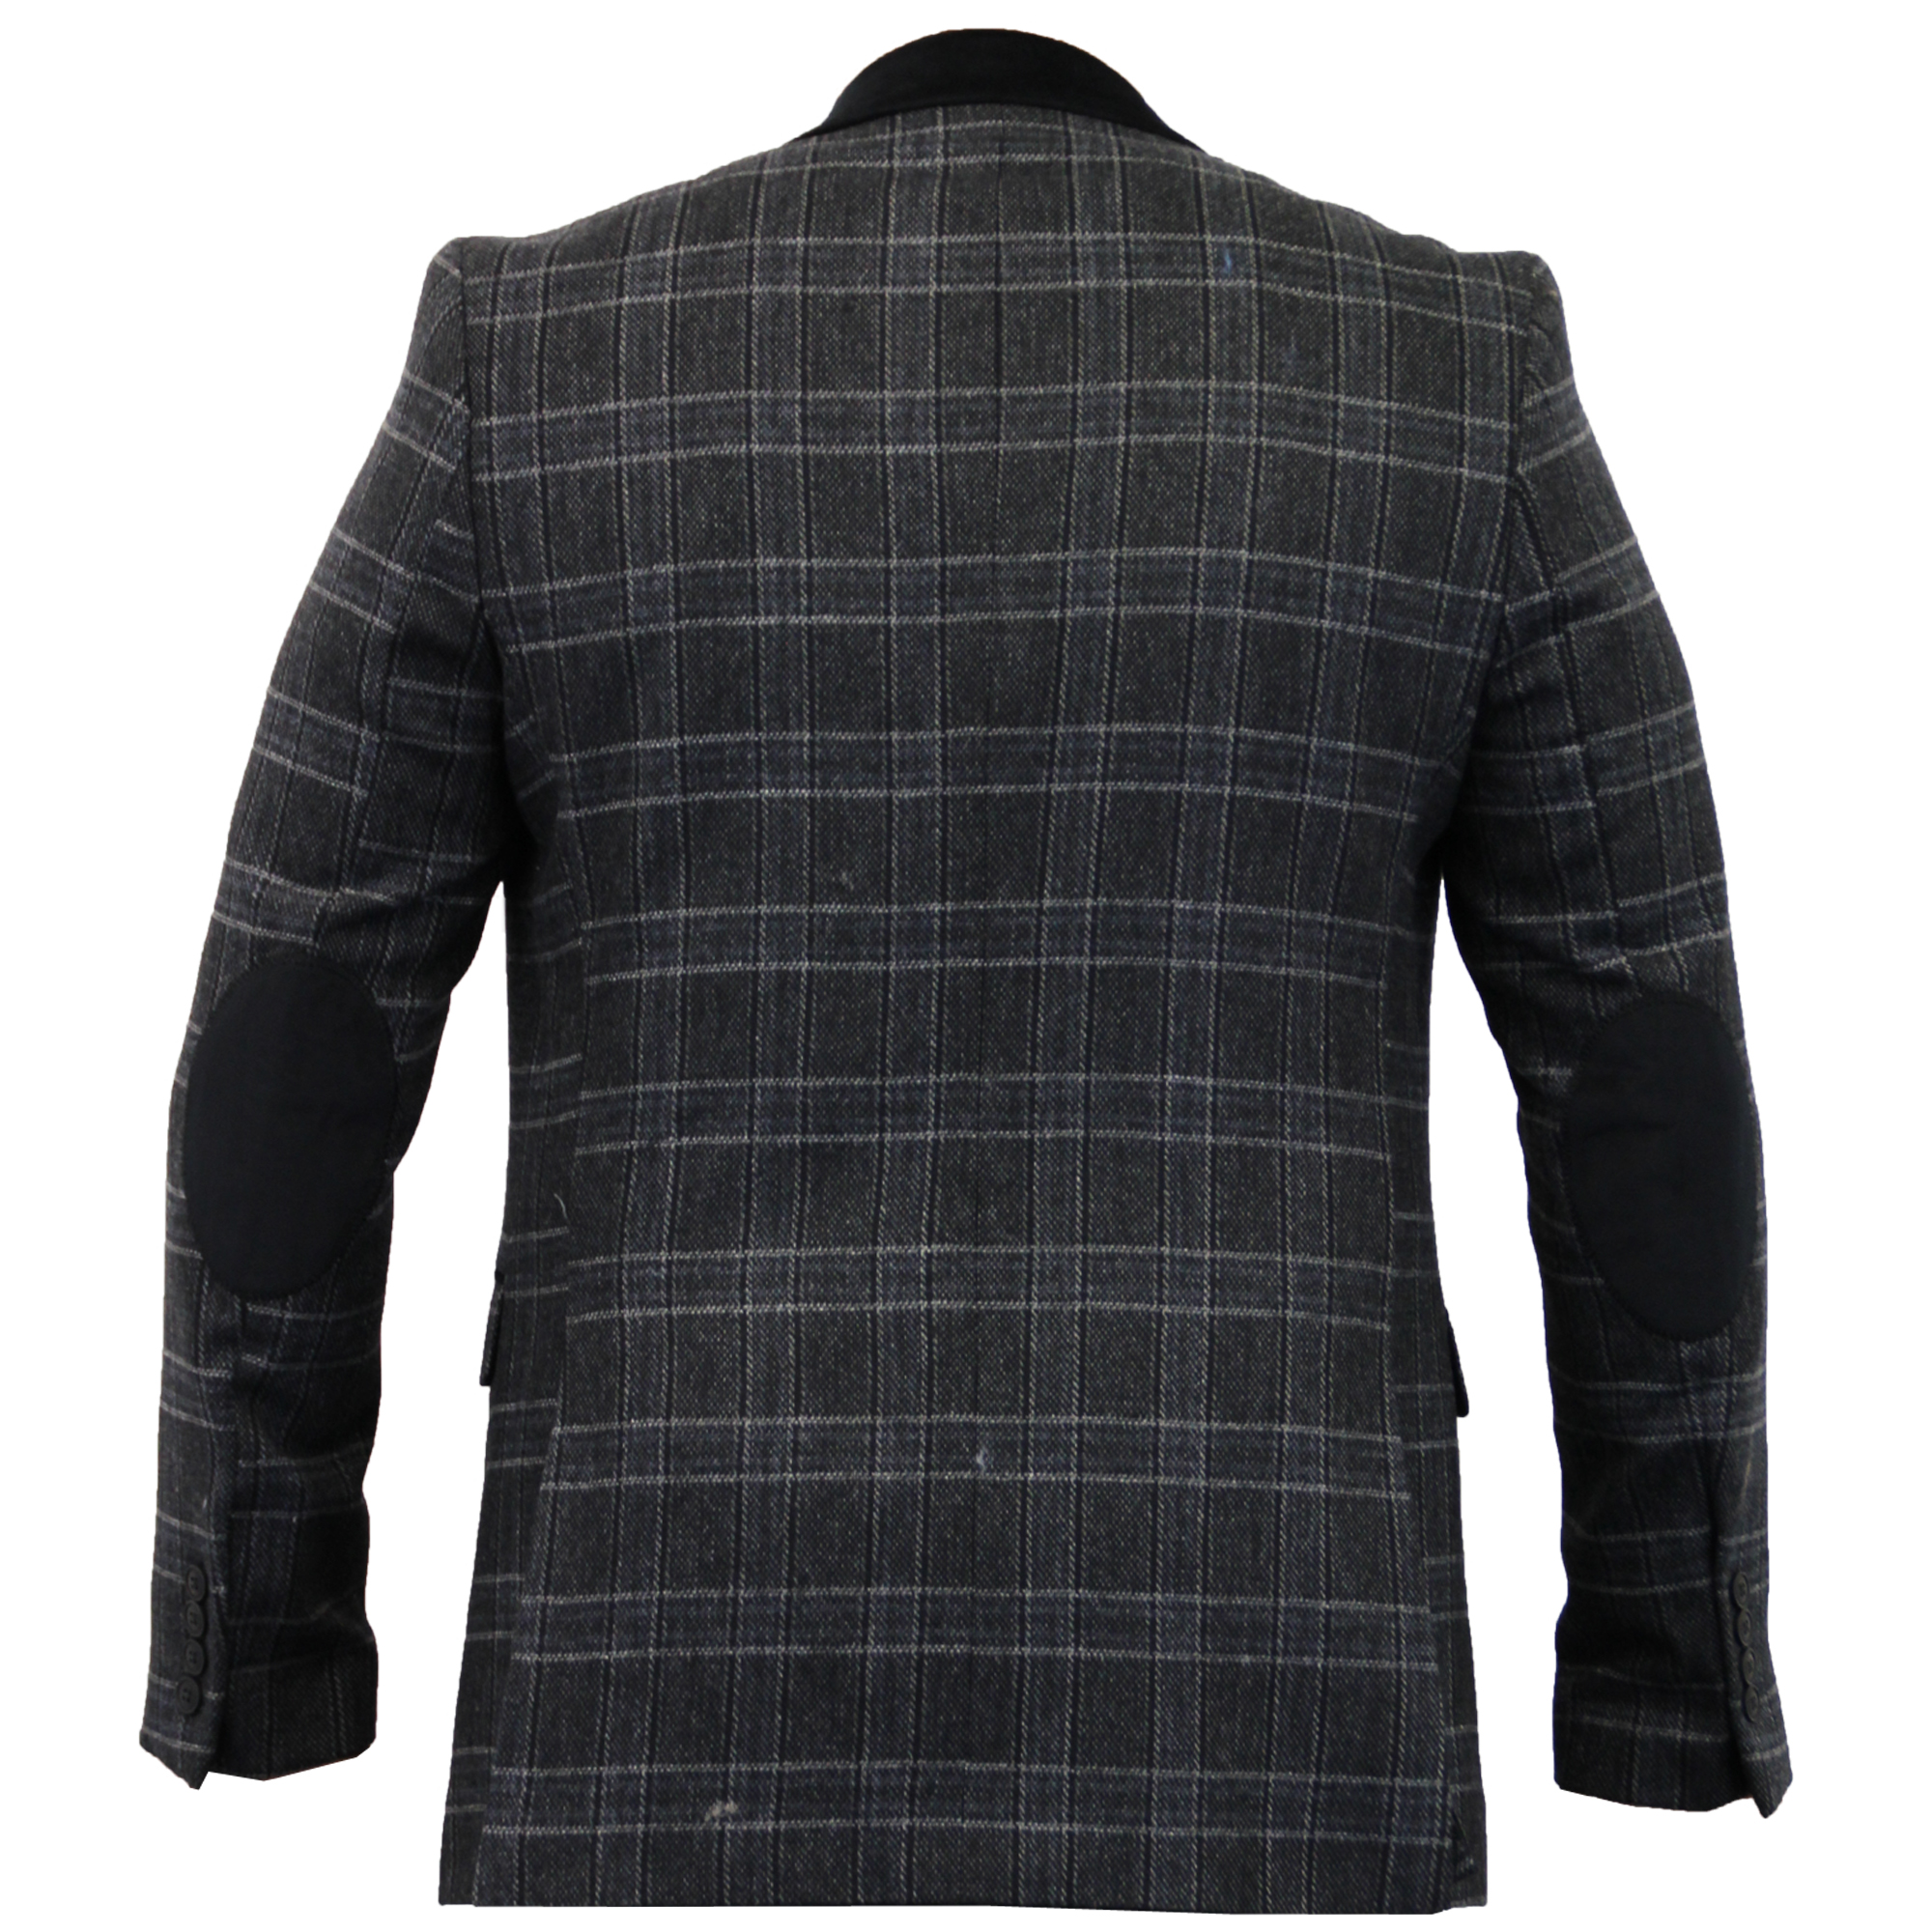 mens checked blazer herringbone tweed jacket coat thomson richard velvet patch ebay. Black Bedroom Furniture Sets. Home Design Ideas